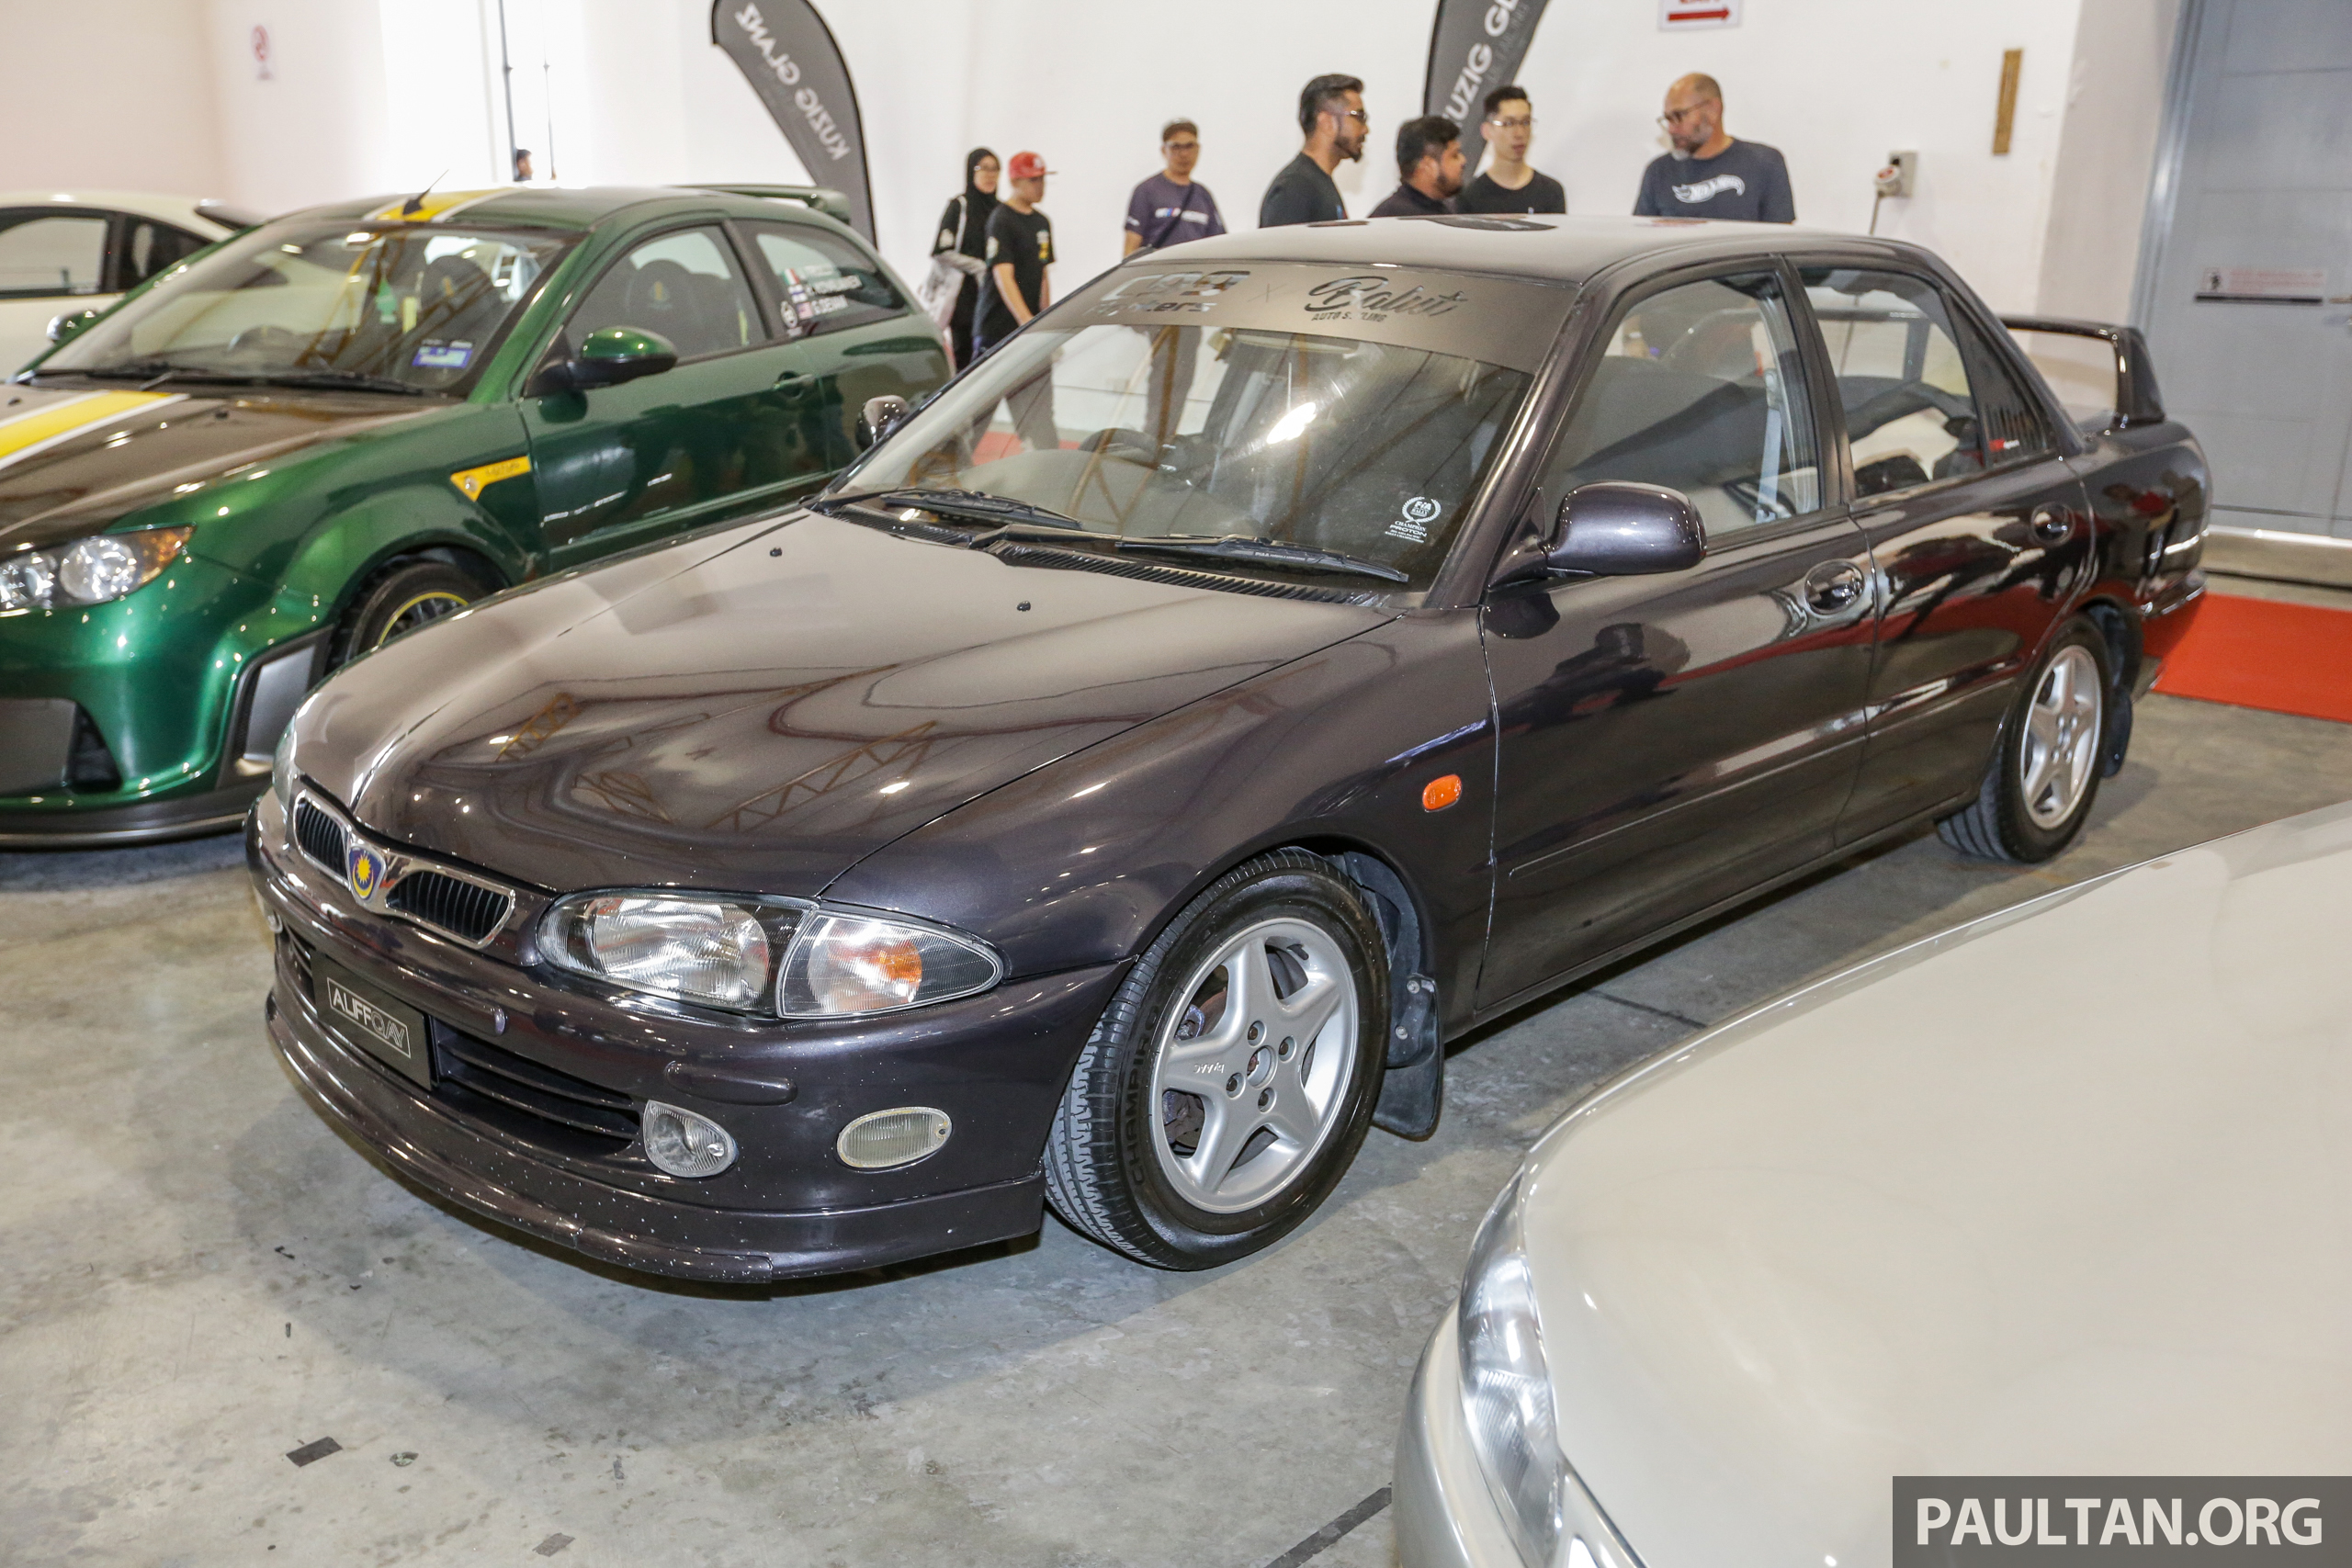 Proton Wira 1 8 Exi Dohc The C99 Limited Edition Paultan Org